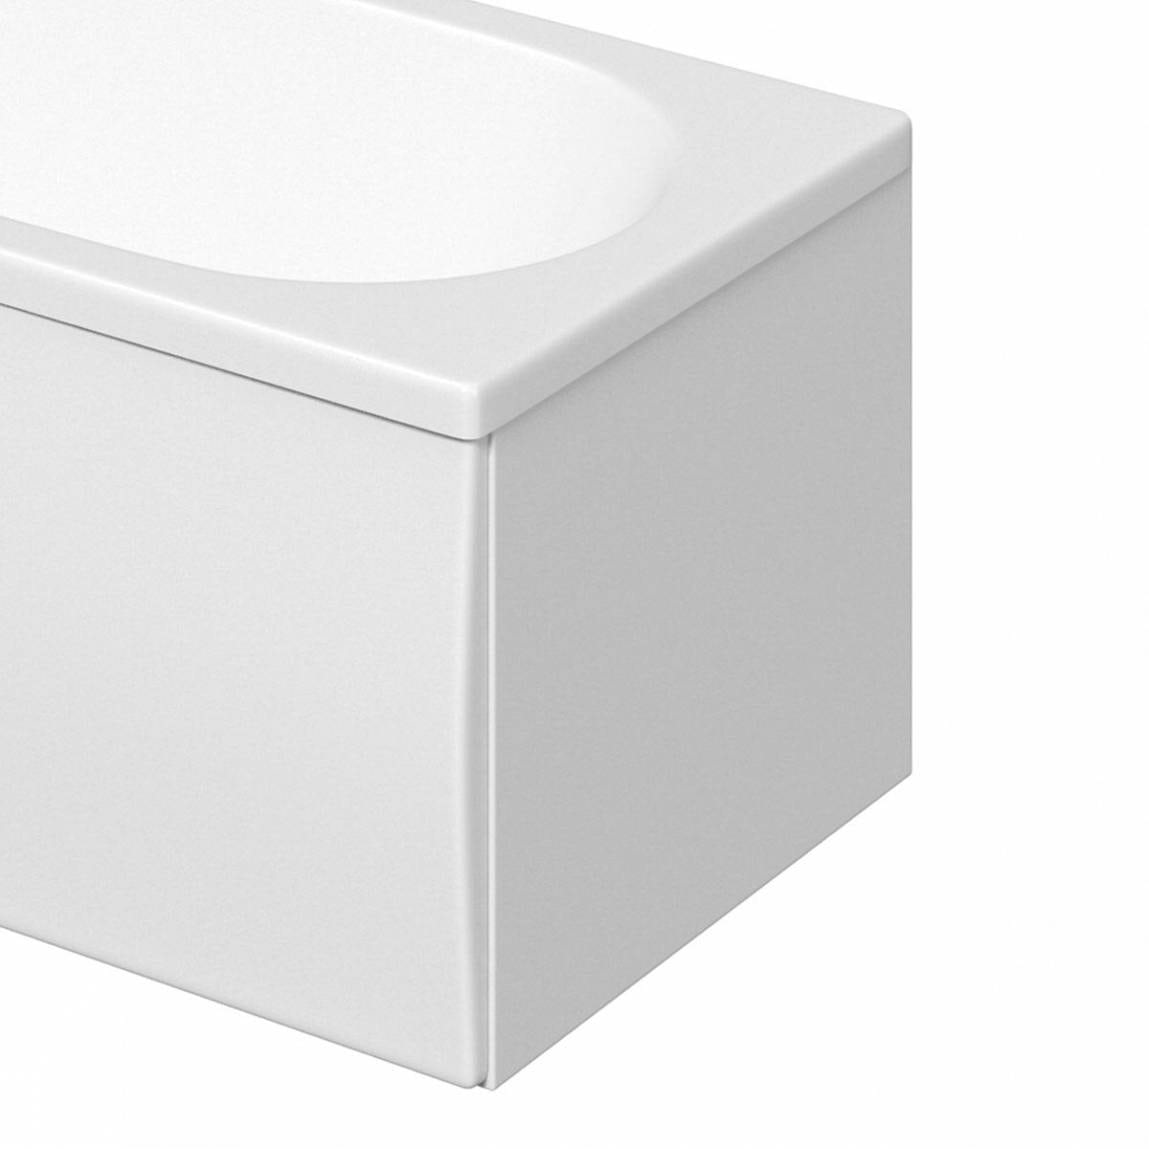 Evesham 750 Bath End Panel